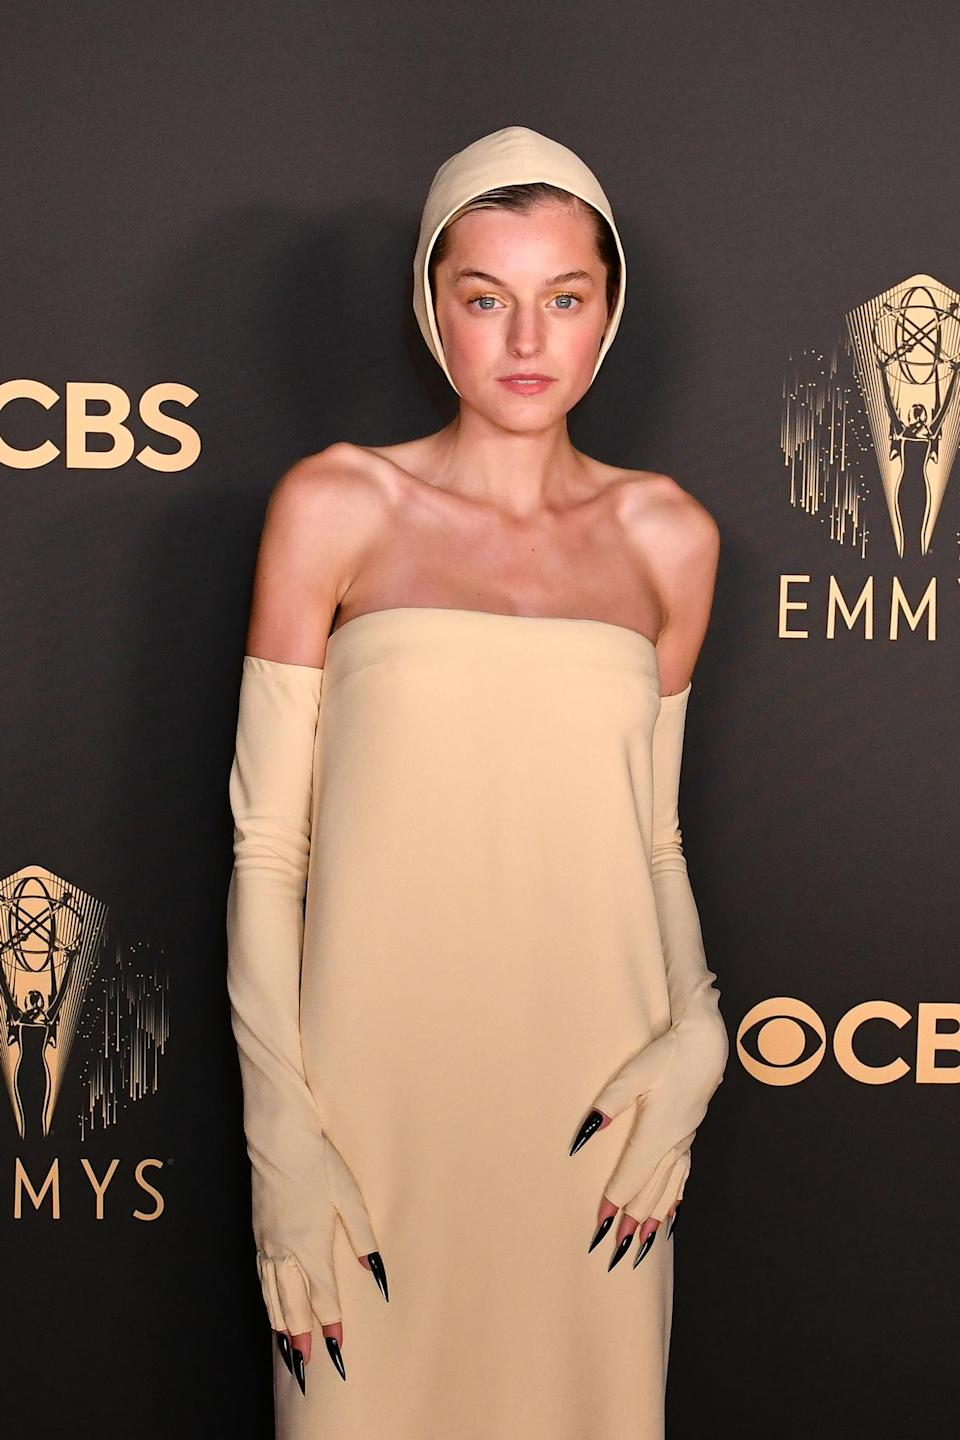 """<p>Emma Corrin's face <em>and </em>nails are standing out on tonight's red carpet. <em>The Crown</em> actress worked with makeup artist <a href=""""https://www.instagram.com/florriewhitemakeup/"""" rel=""""nofollow noopener"""" target=""""_blank"""" data-ylk=""""slk:Florrin White"""" class=""""link rapid-noclick-resp"""">Florrin White</a> who used BYREDO products to create her warm, glowy makeup look, along with nail tech <a href=""""https://www.instagram.com/simmy_nailsandbeauty/"""" rel=""""nofollow noopener"""" target=""""_blank"""" data-ylk=""""slk:Simone Cummings"""" class=""""link rapid-noclick-resp"""">Simone Cummings</a> who molded her show-stopping glossy black claws. </p>"""